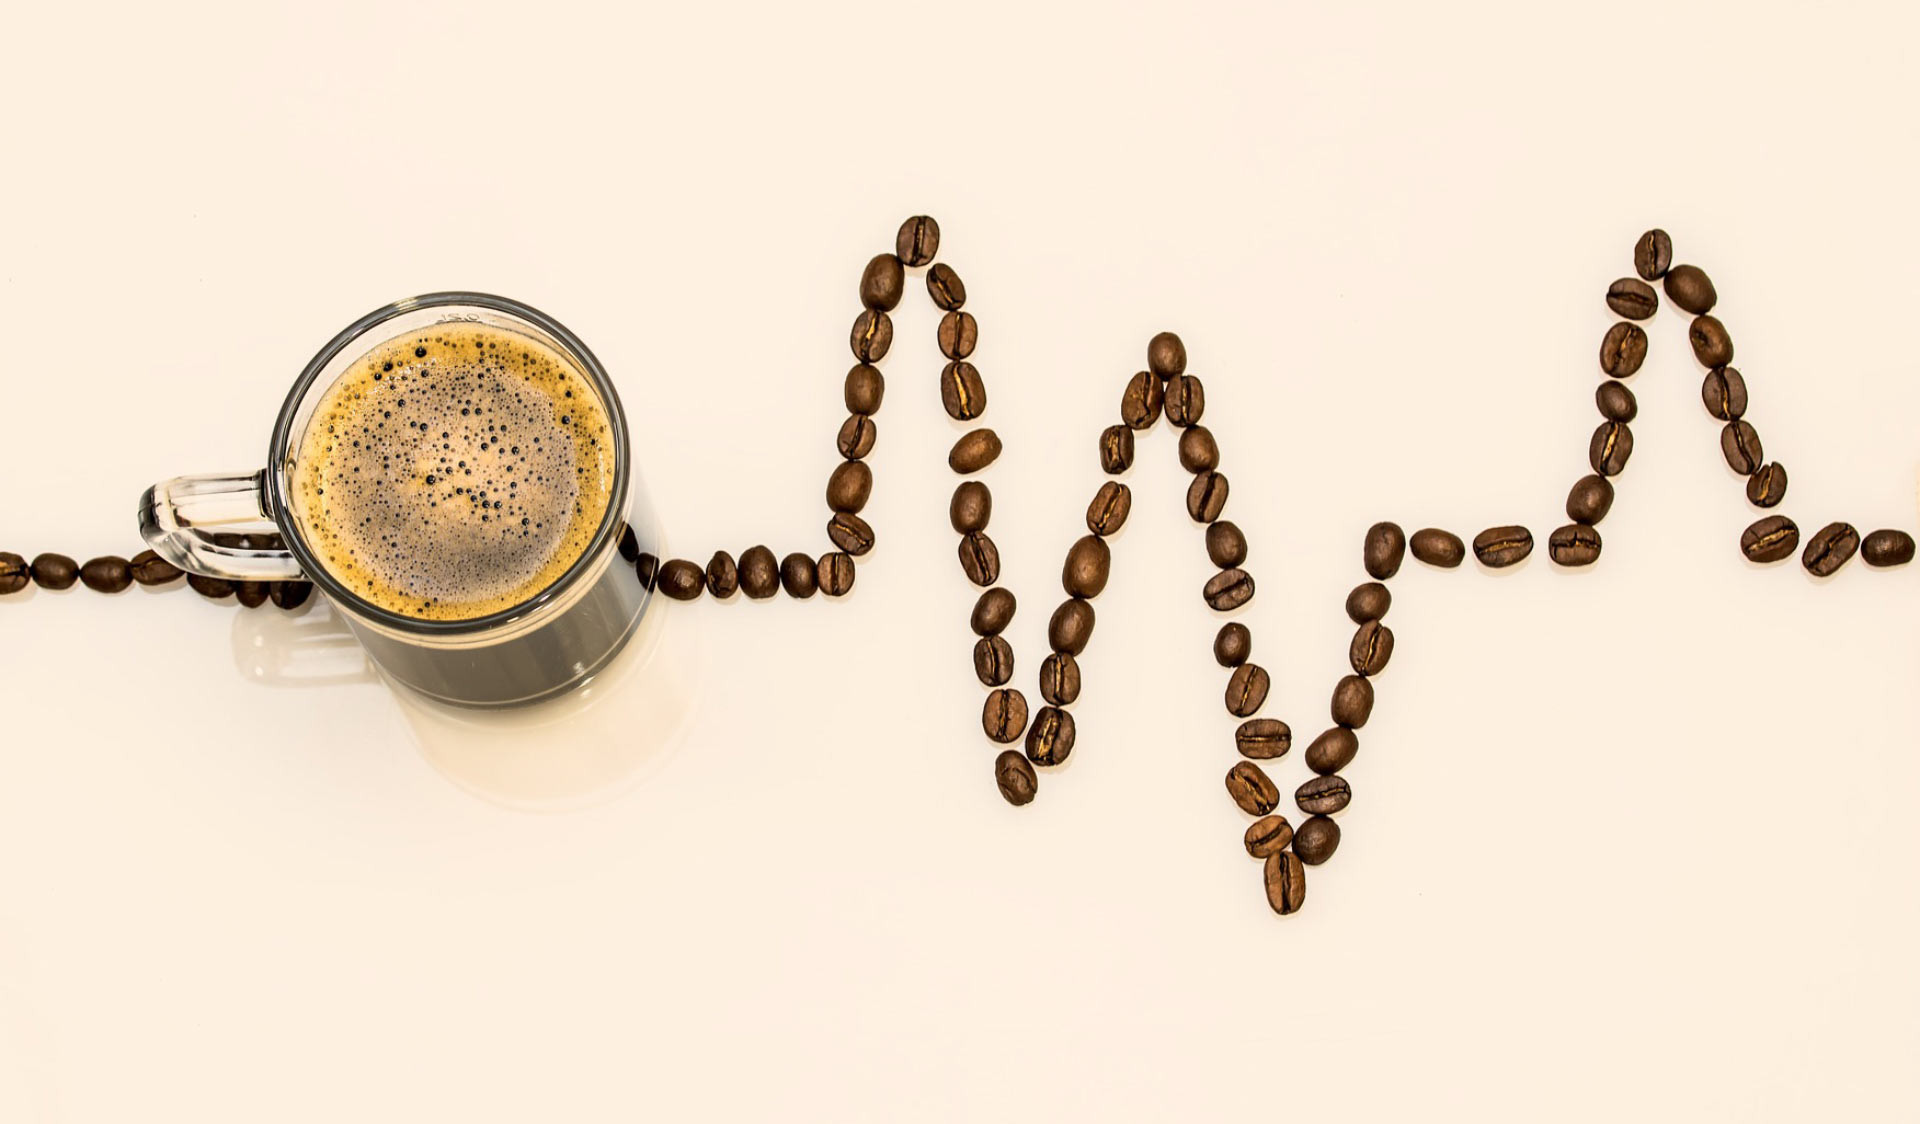 According to the scientists coffee consumption is generally safe but doctors should not recommend drinking coffee to prevent disease- and people should not start drinking coffee for health reasons. Image credit Myriams